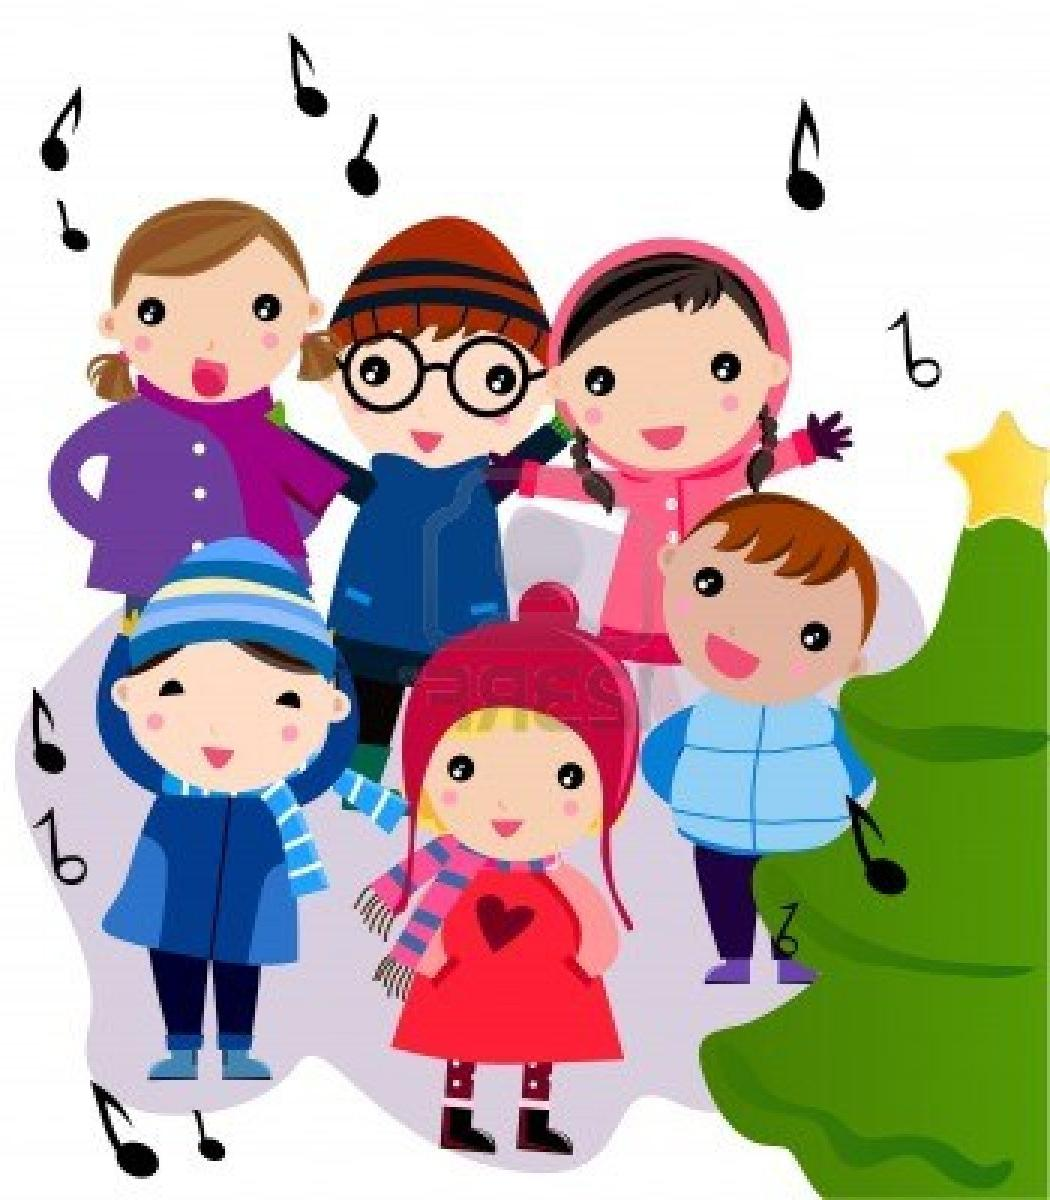 HD School Winter Concert Clip Art Cdr » Free Vector Art, Images.